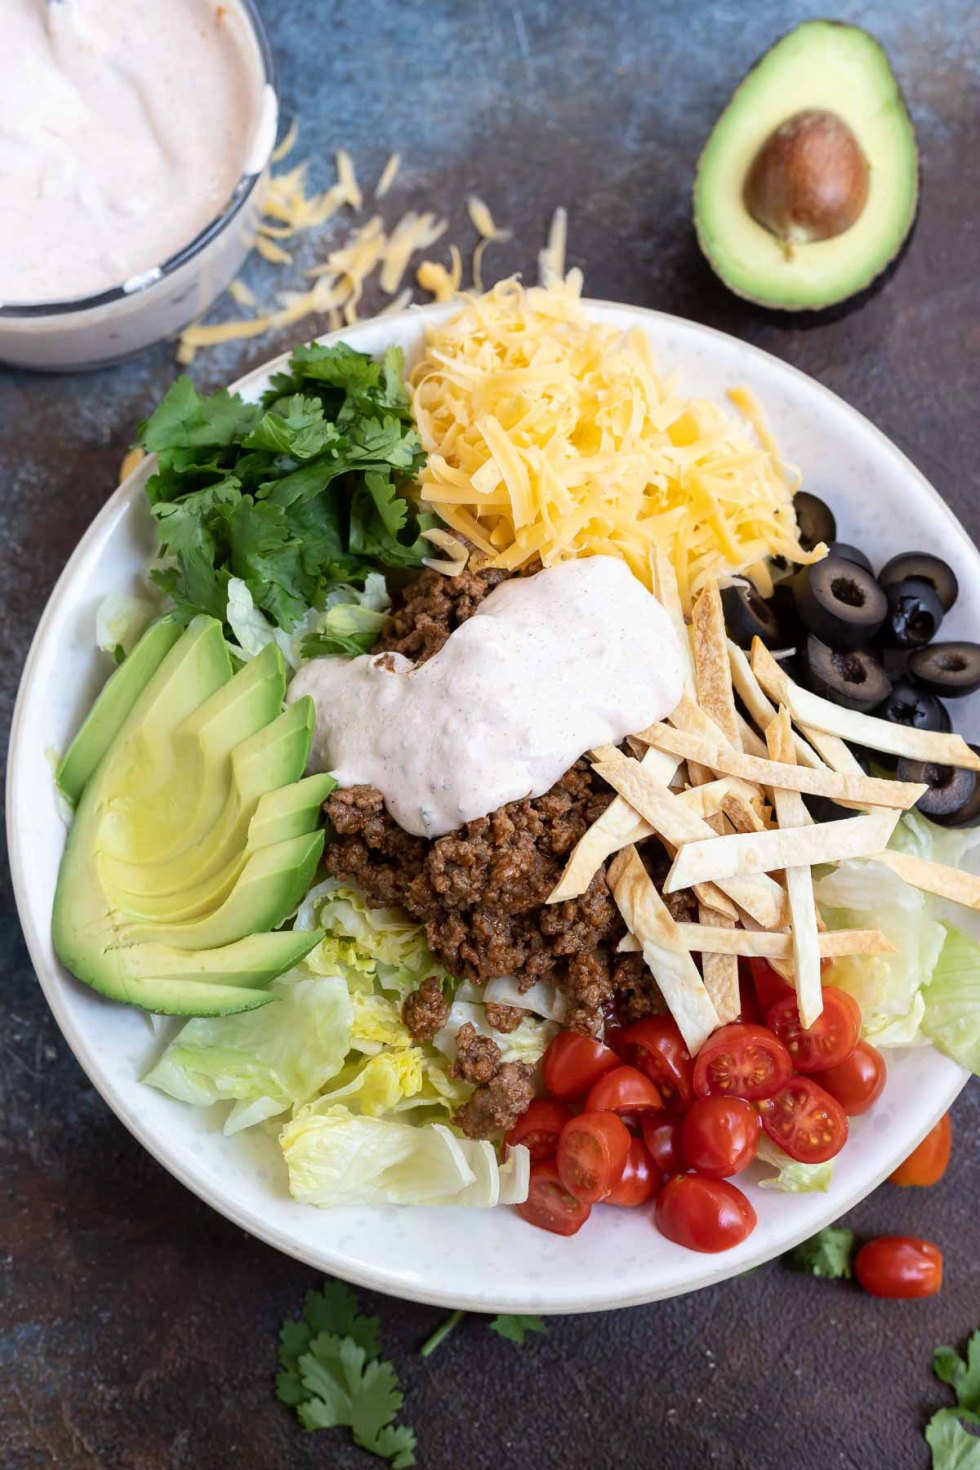 taco salad ingredients topped with dressing in white bowl